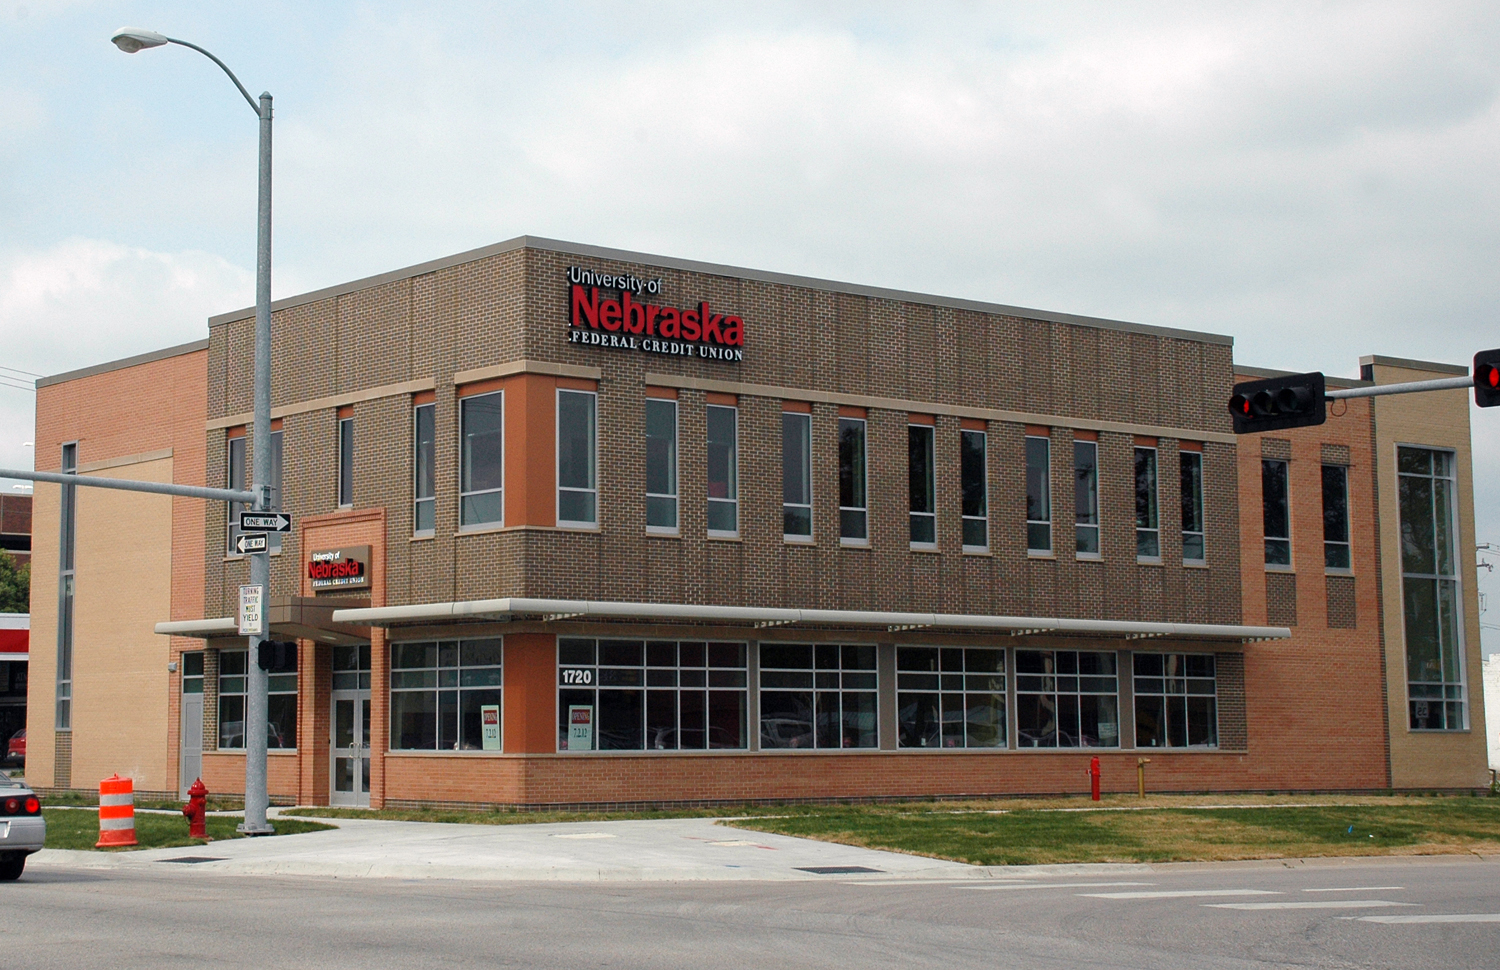 The new University of Nebraska Federal Credit Union building, located at 1720 P St.